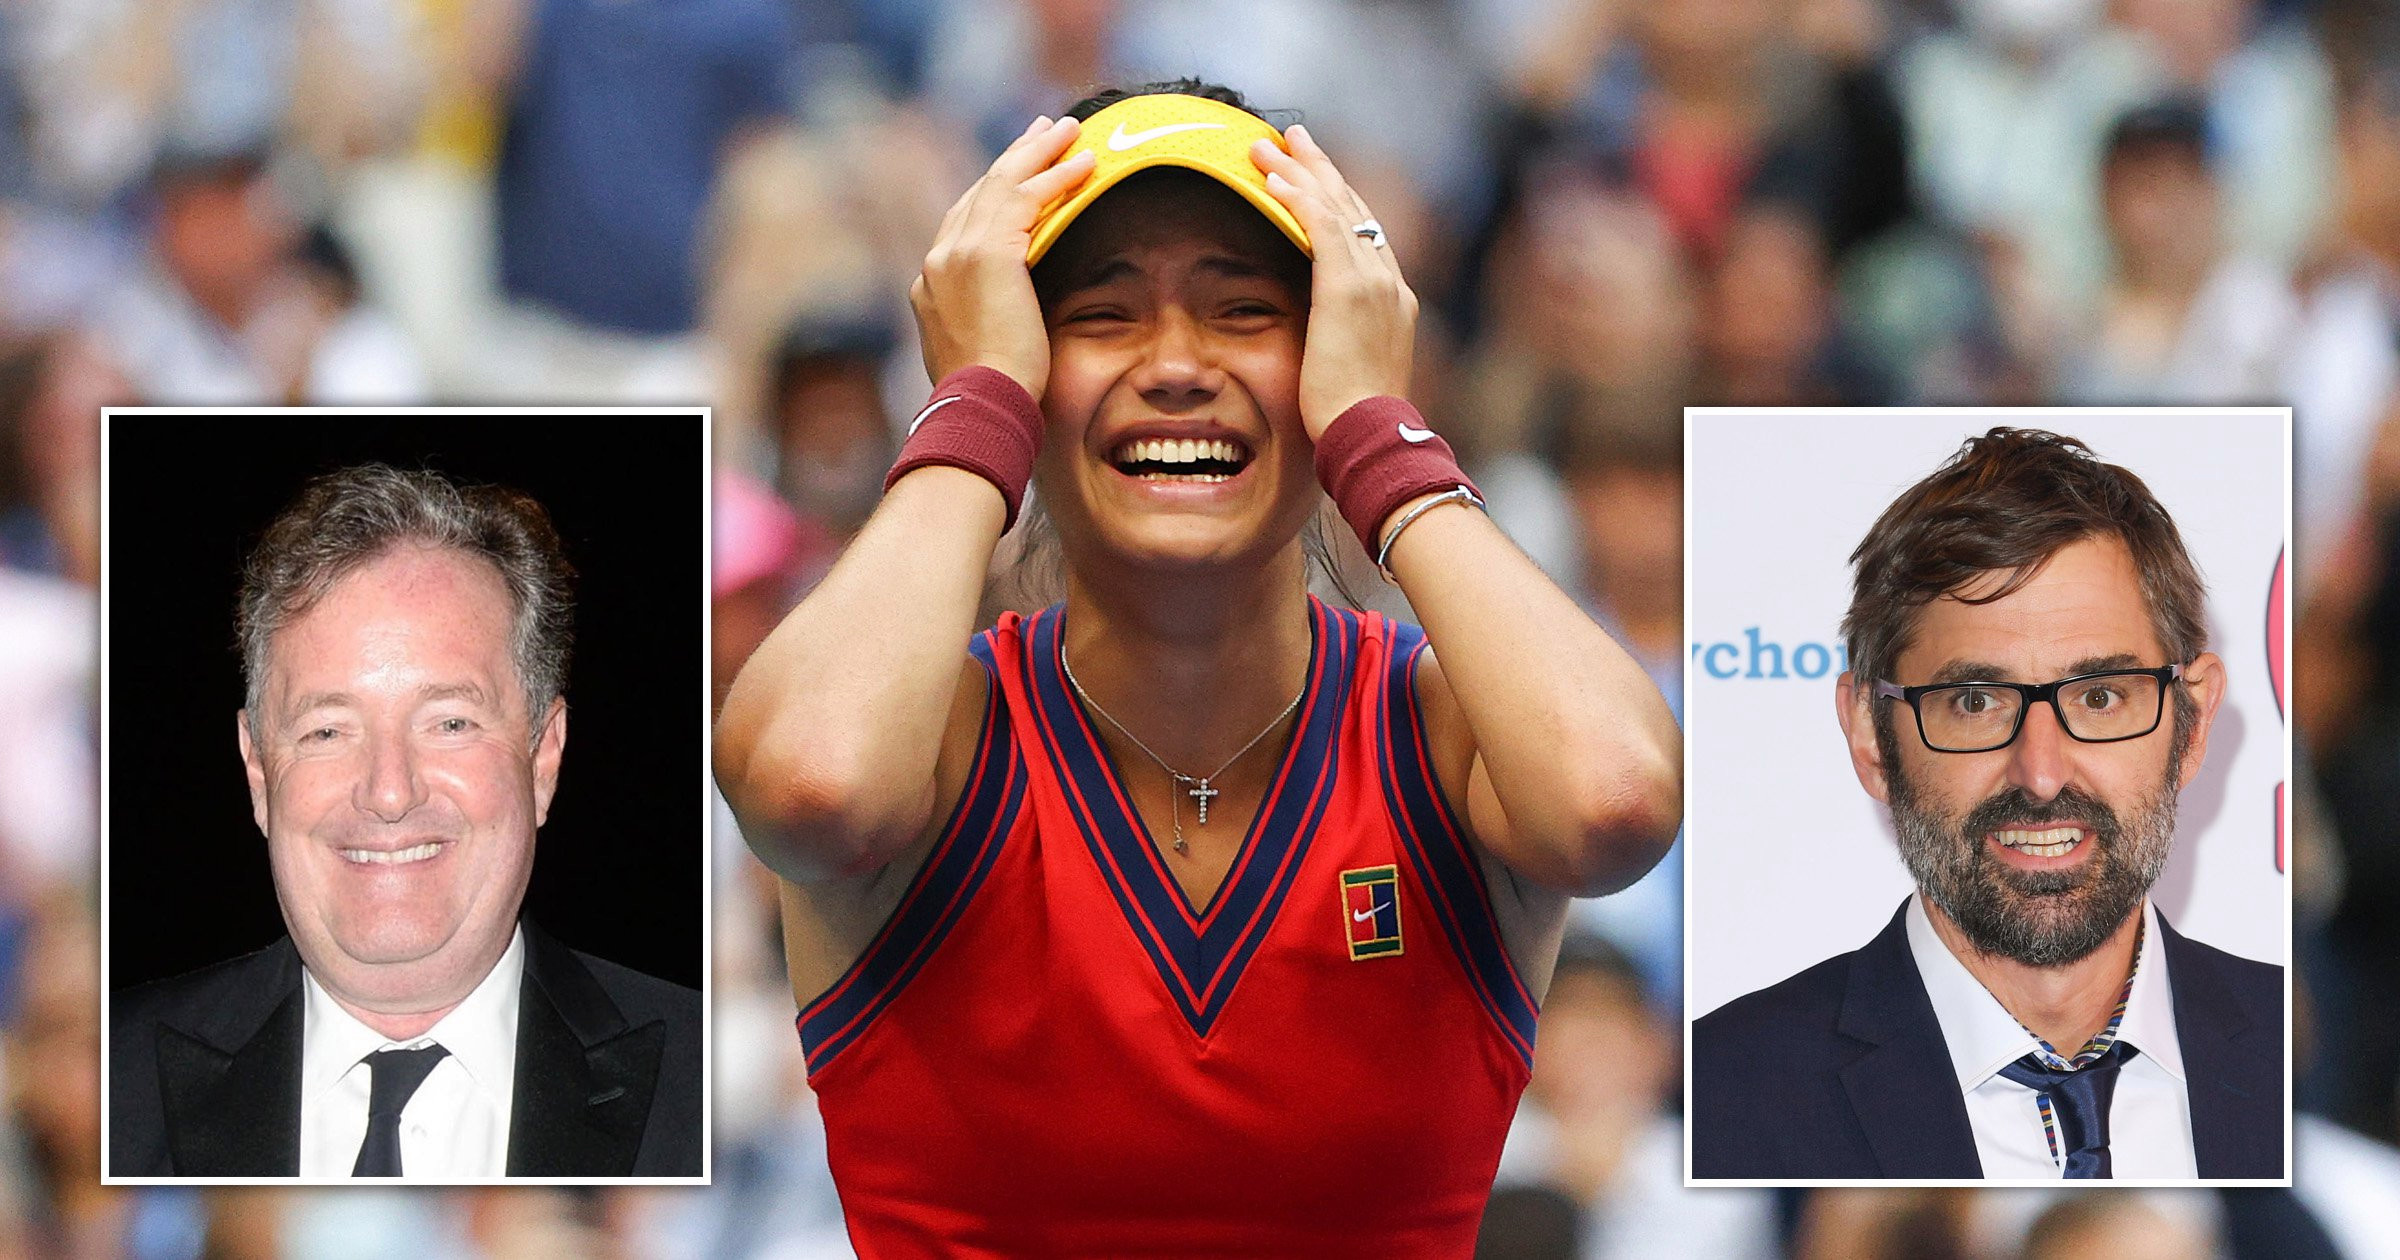 Piers Morgan and Louis Theroux lead celebrations as Emma Raducanu wins US open: 'Pure class'